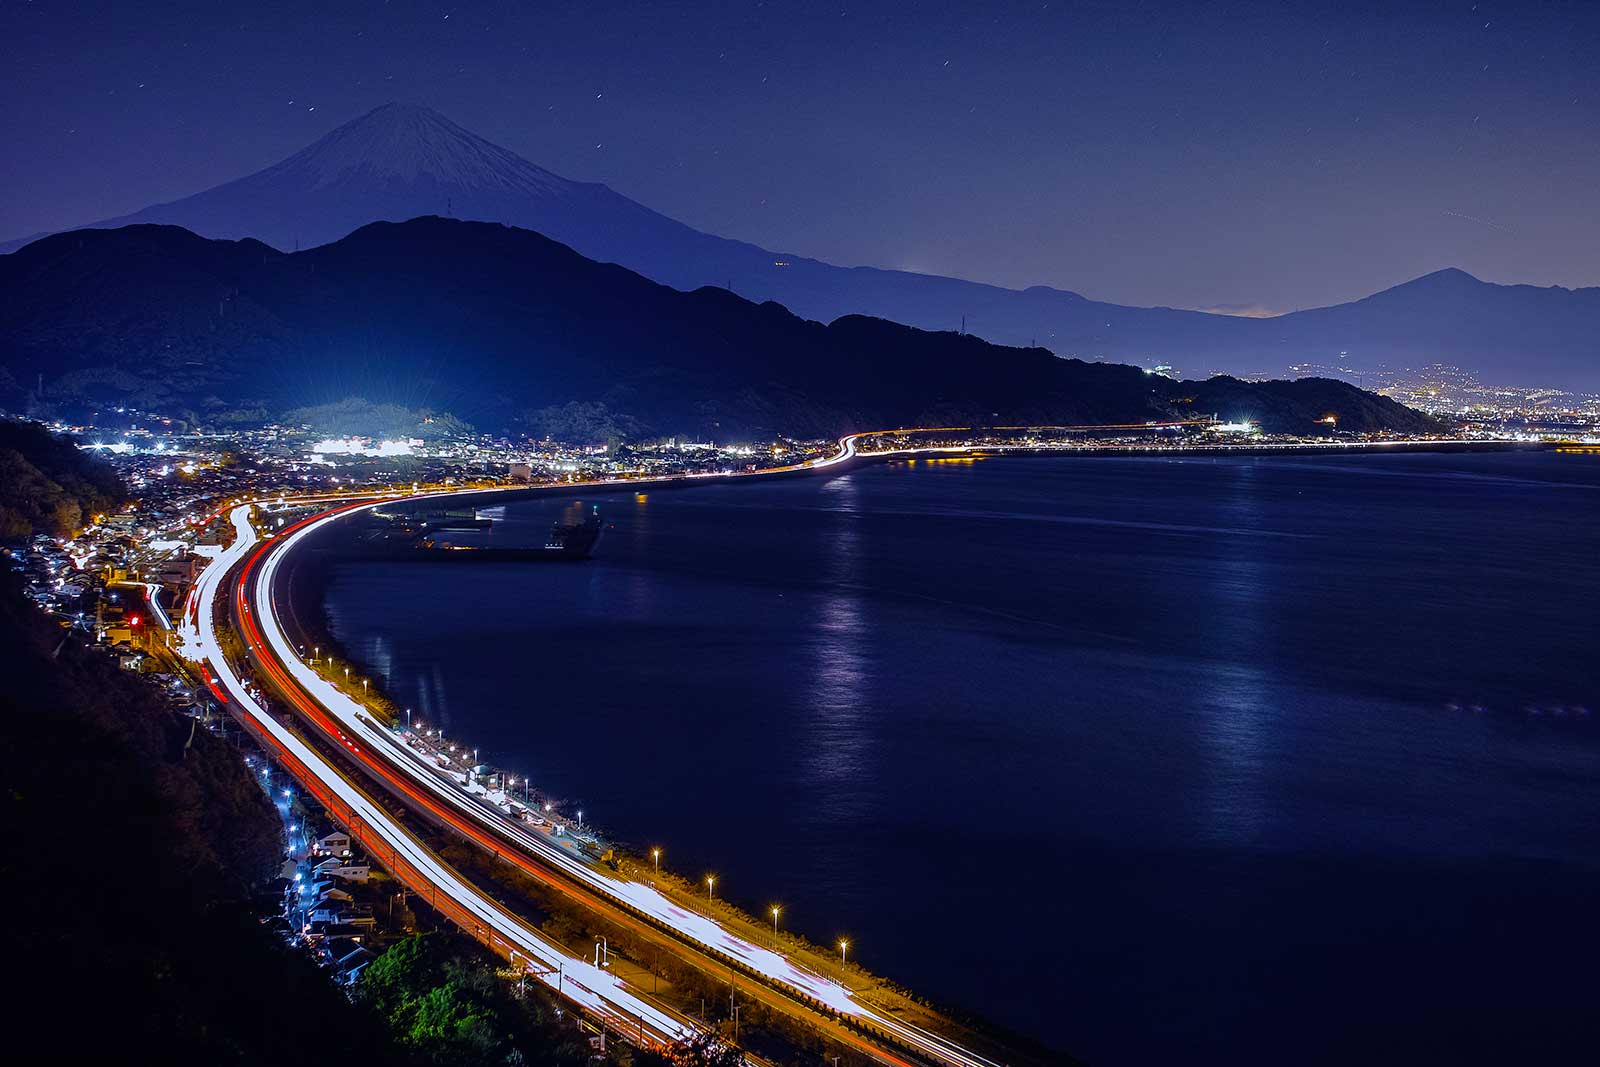 Photograph Stars and Mt.Fuji by Hideo Ishijima on 500px